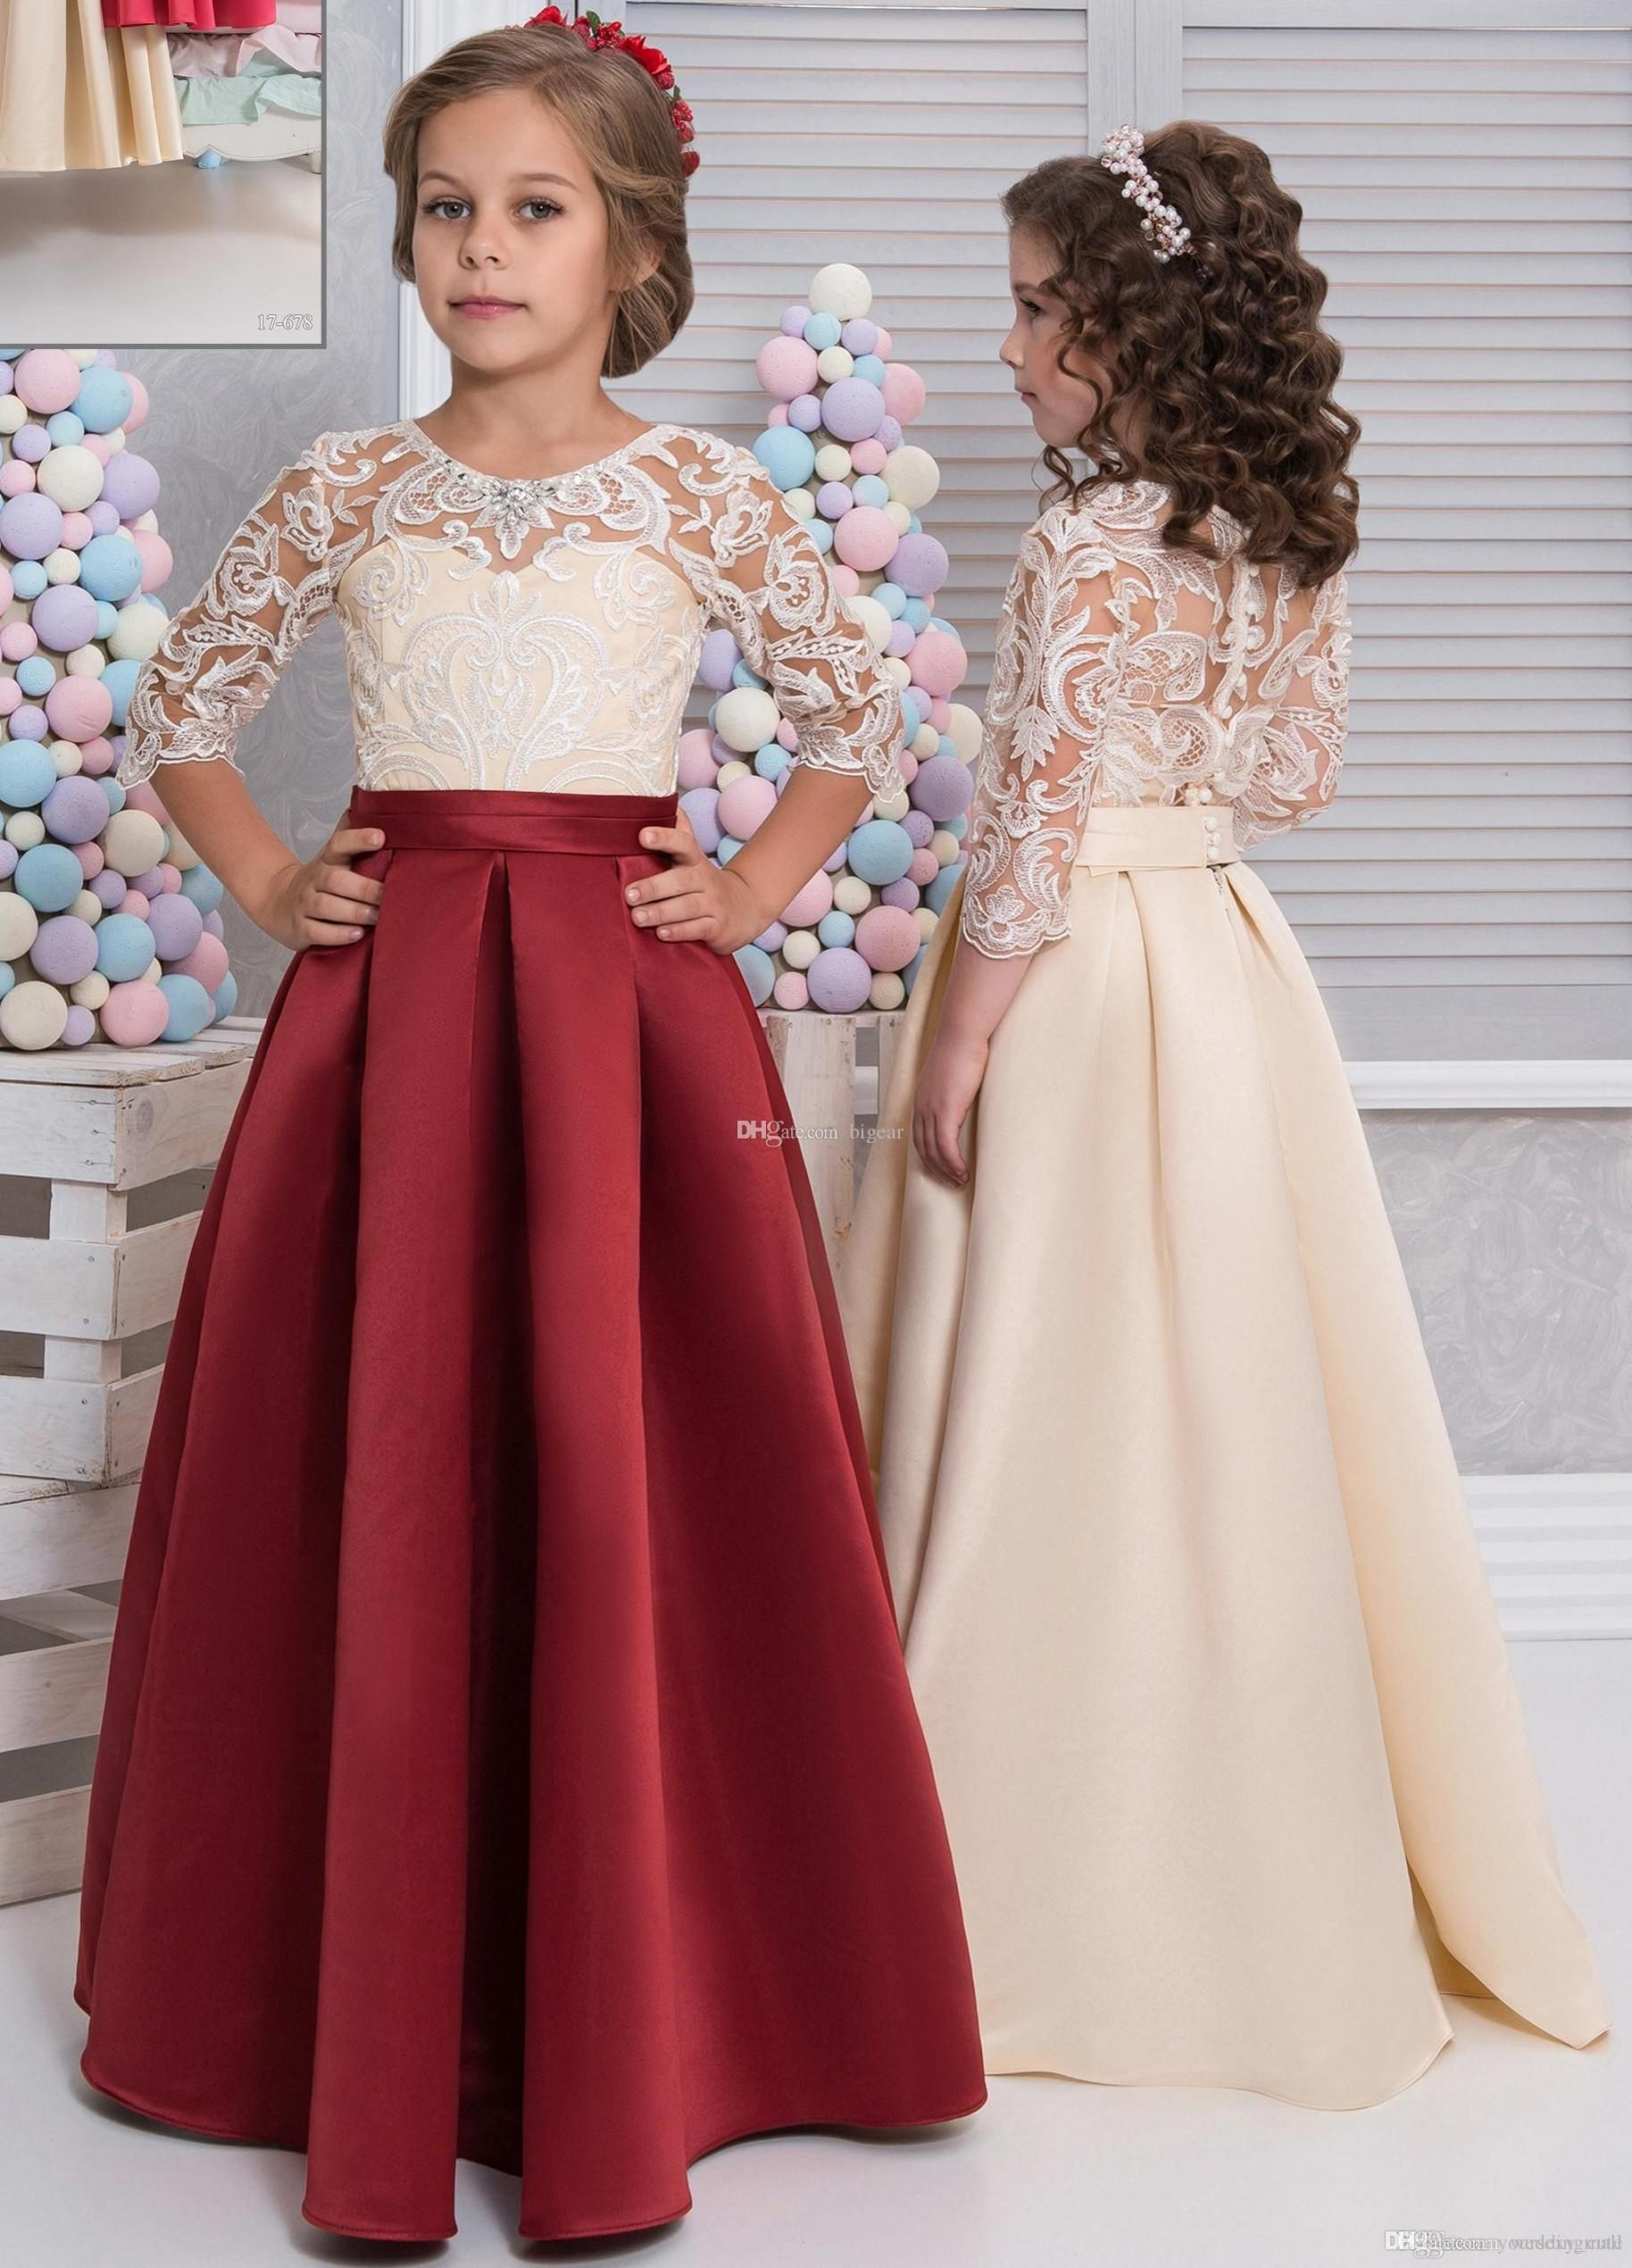 50 26 Floor Length Lace And Satin Flower Dress With Half Sleeves Pageant Childrens Bridesmaid Dresses Communion Shoes